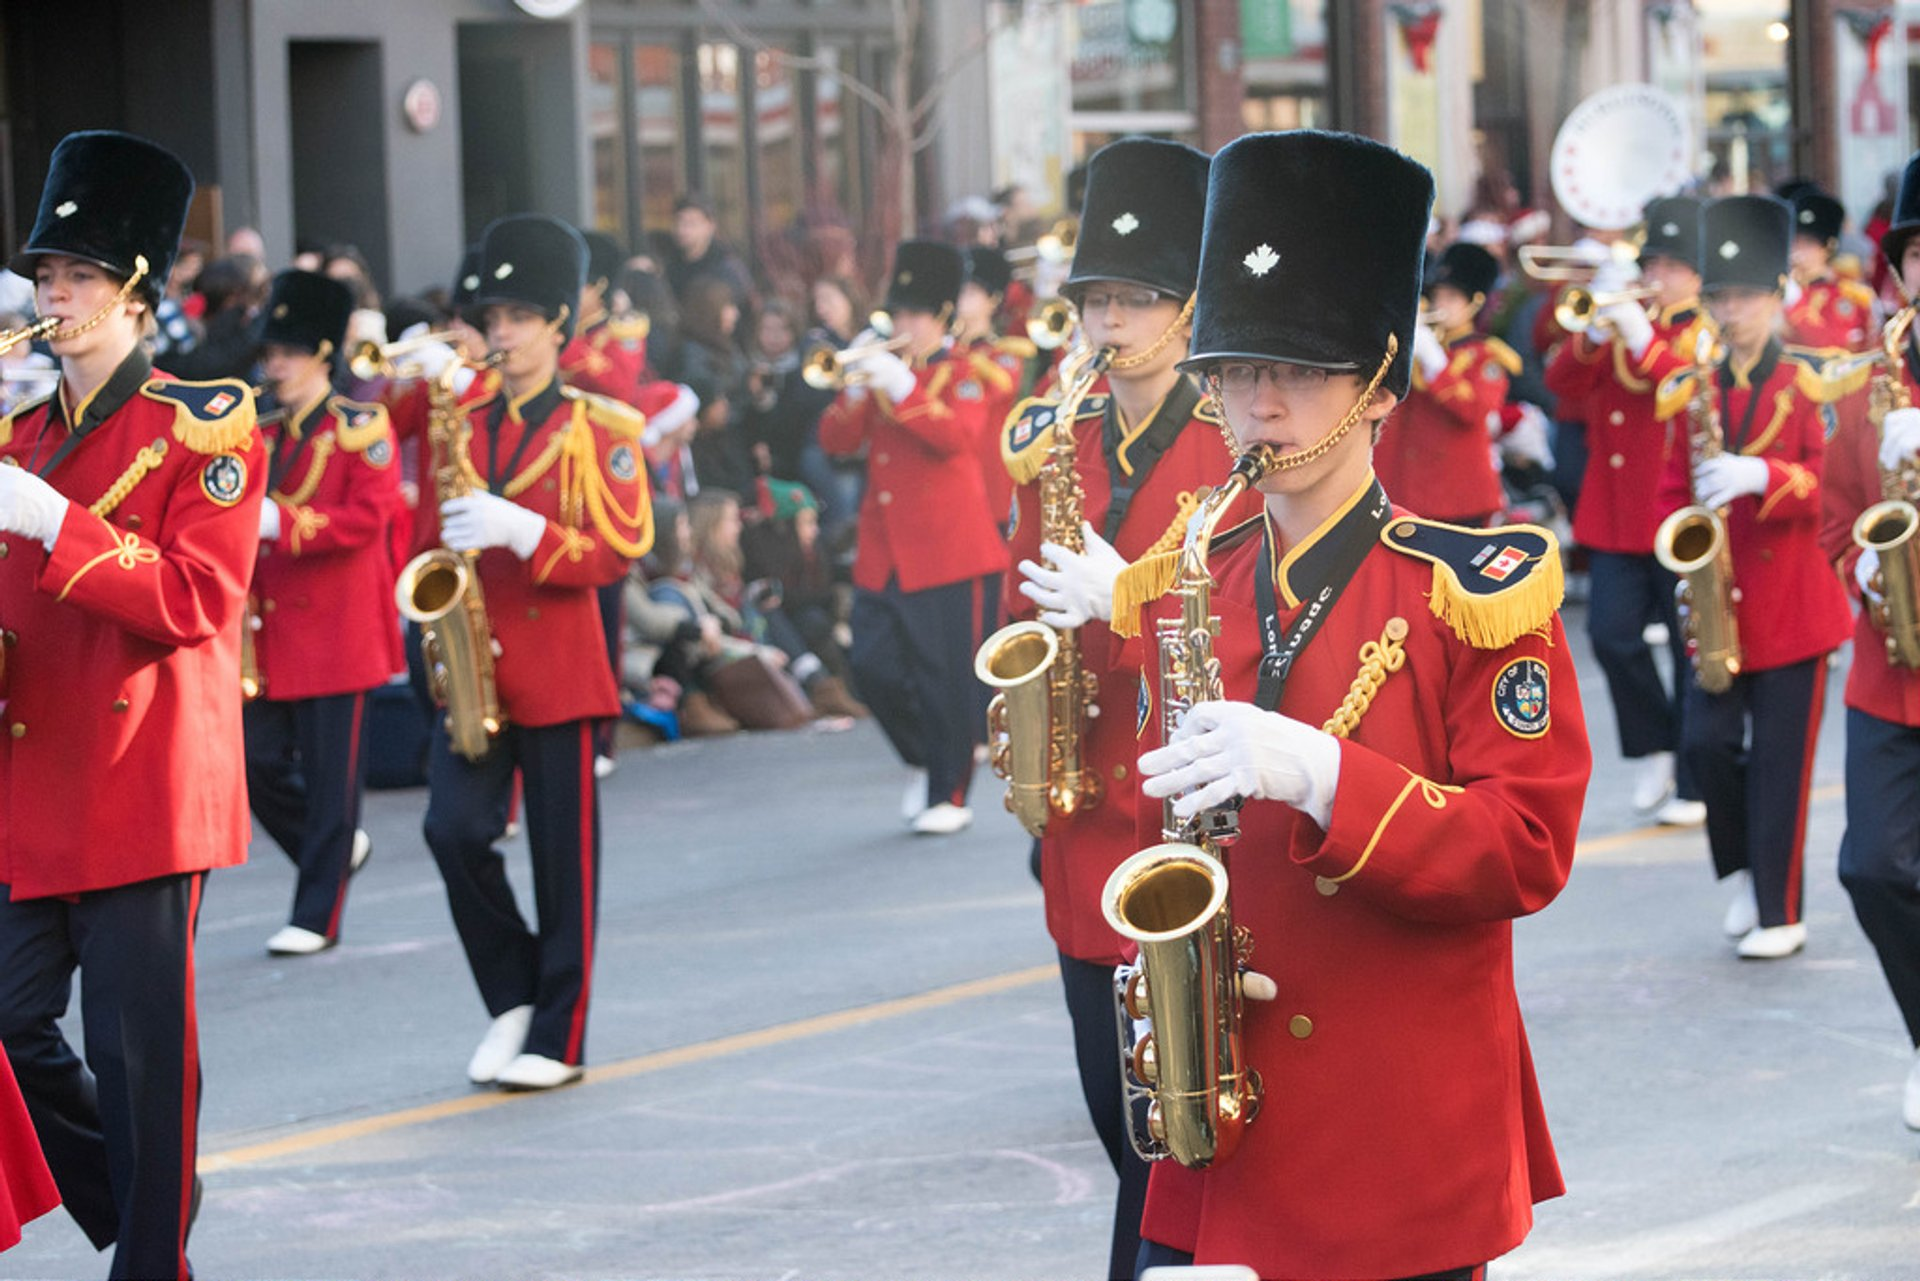 Best time to see Santa Claus Parade in Toronto 2020